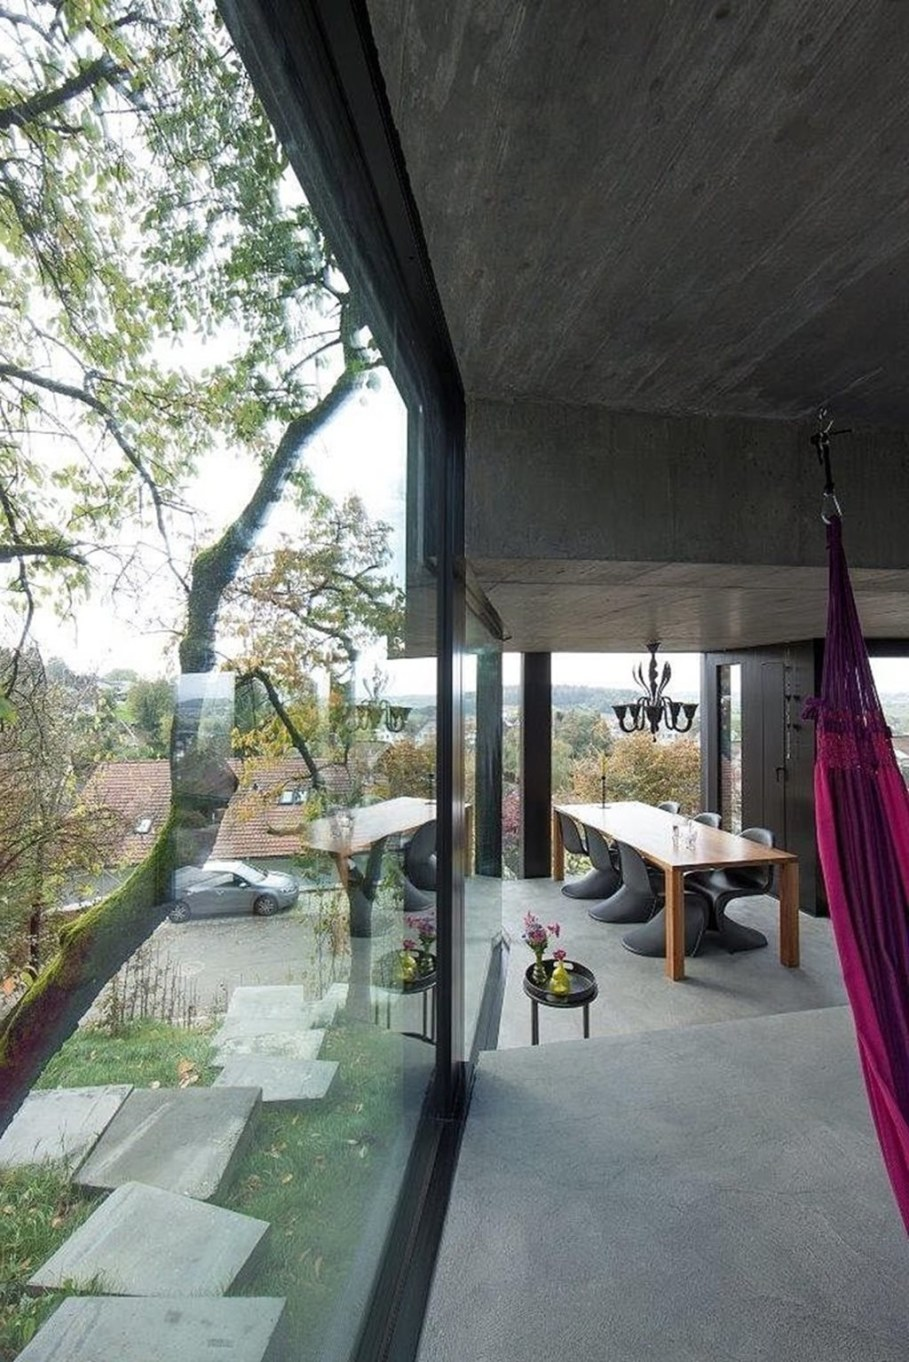 Design country house of glass and concrete 7